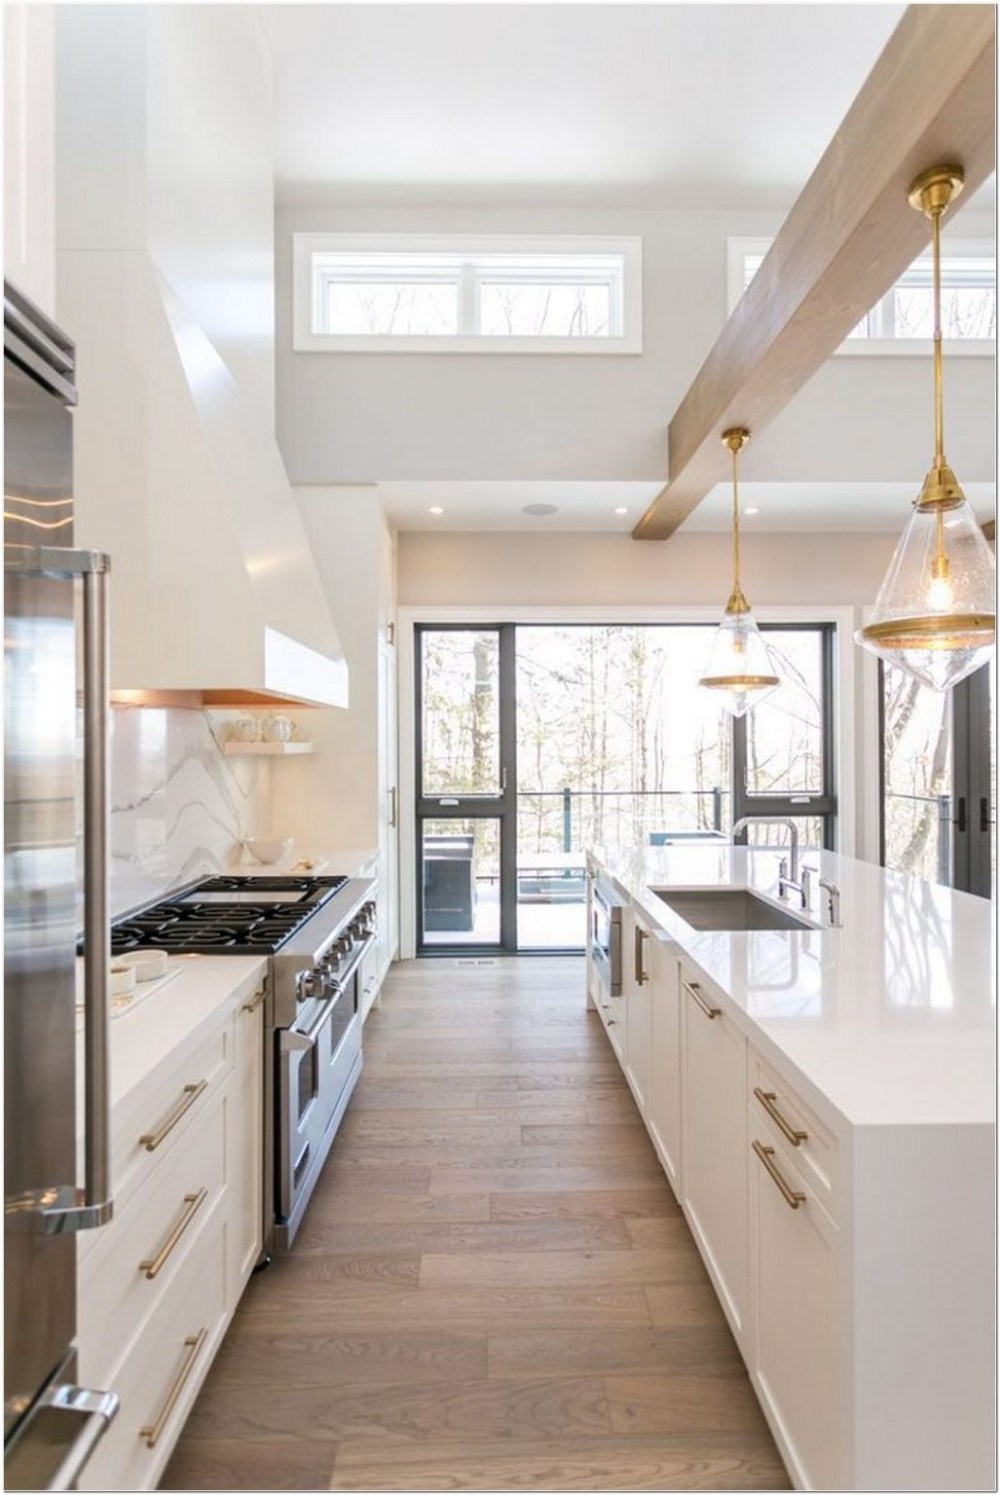 96 White Kitchen Designs Not Quite What You Re Looking For Try These Alternative Desig In 2020 Kitchen Inspiration Design Kitchen Cabinet Remodel White Kitchen Design